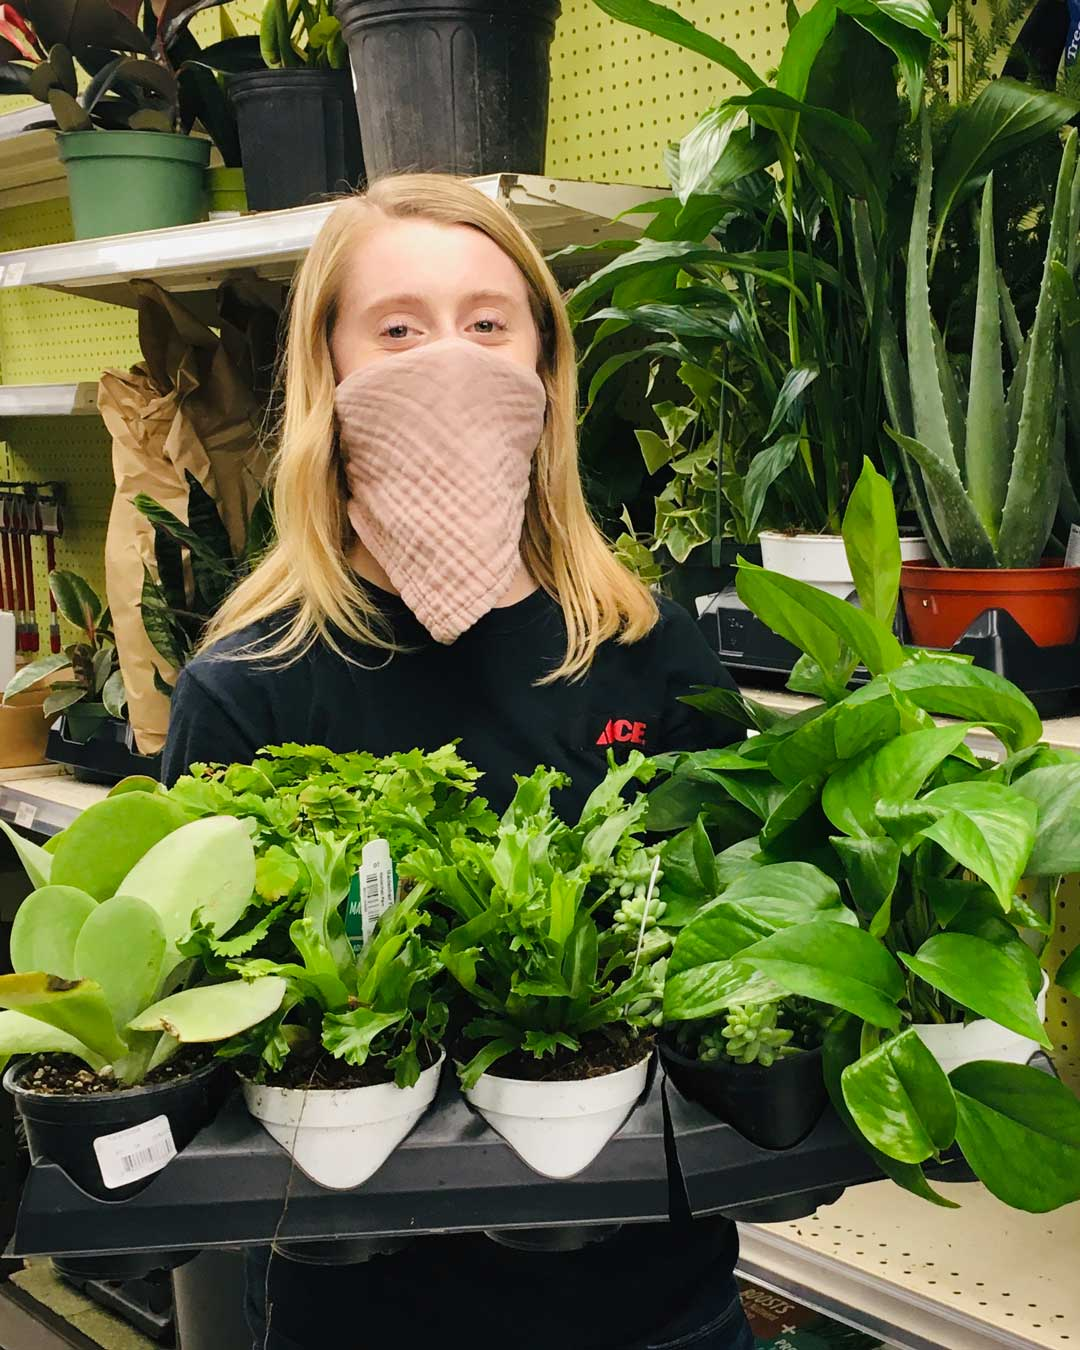 natalie with new house plants